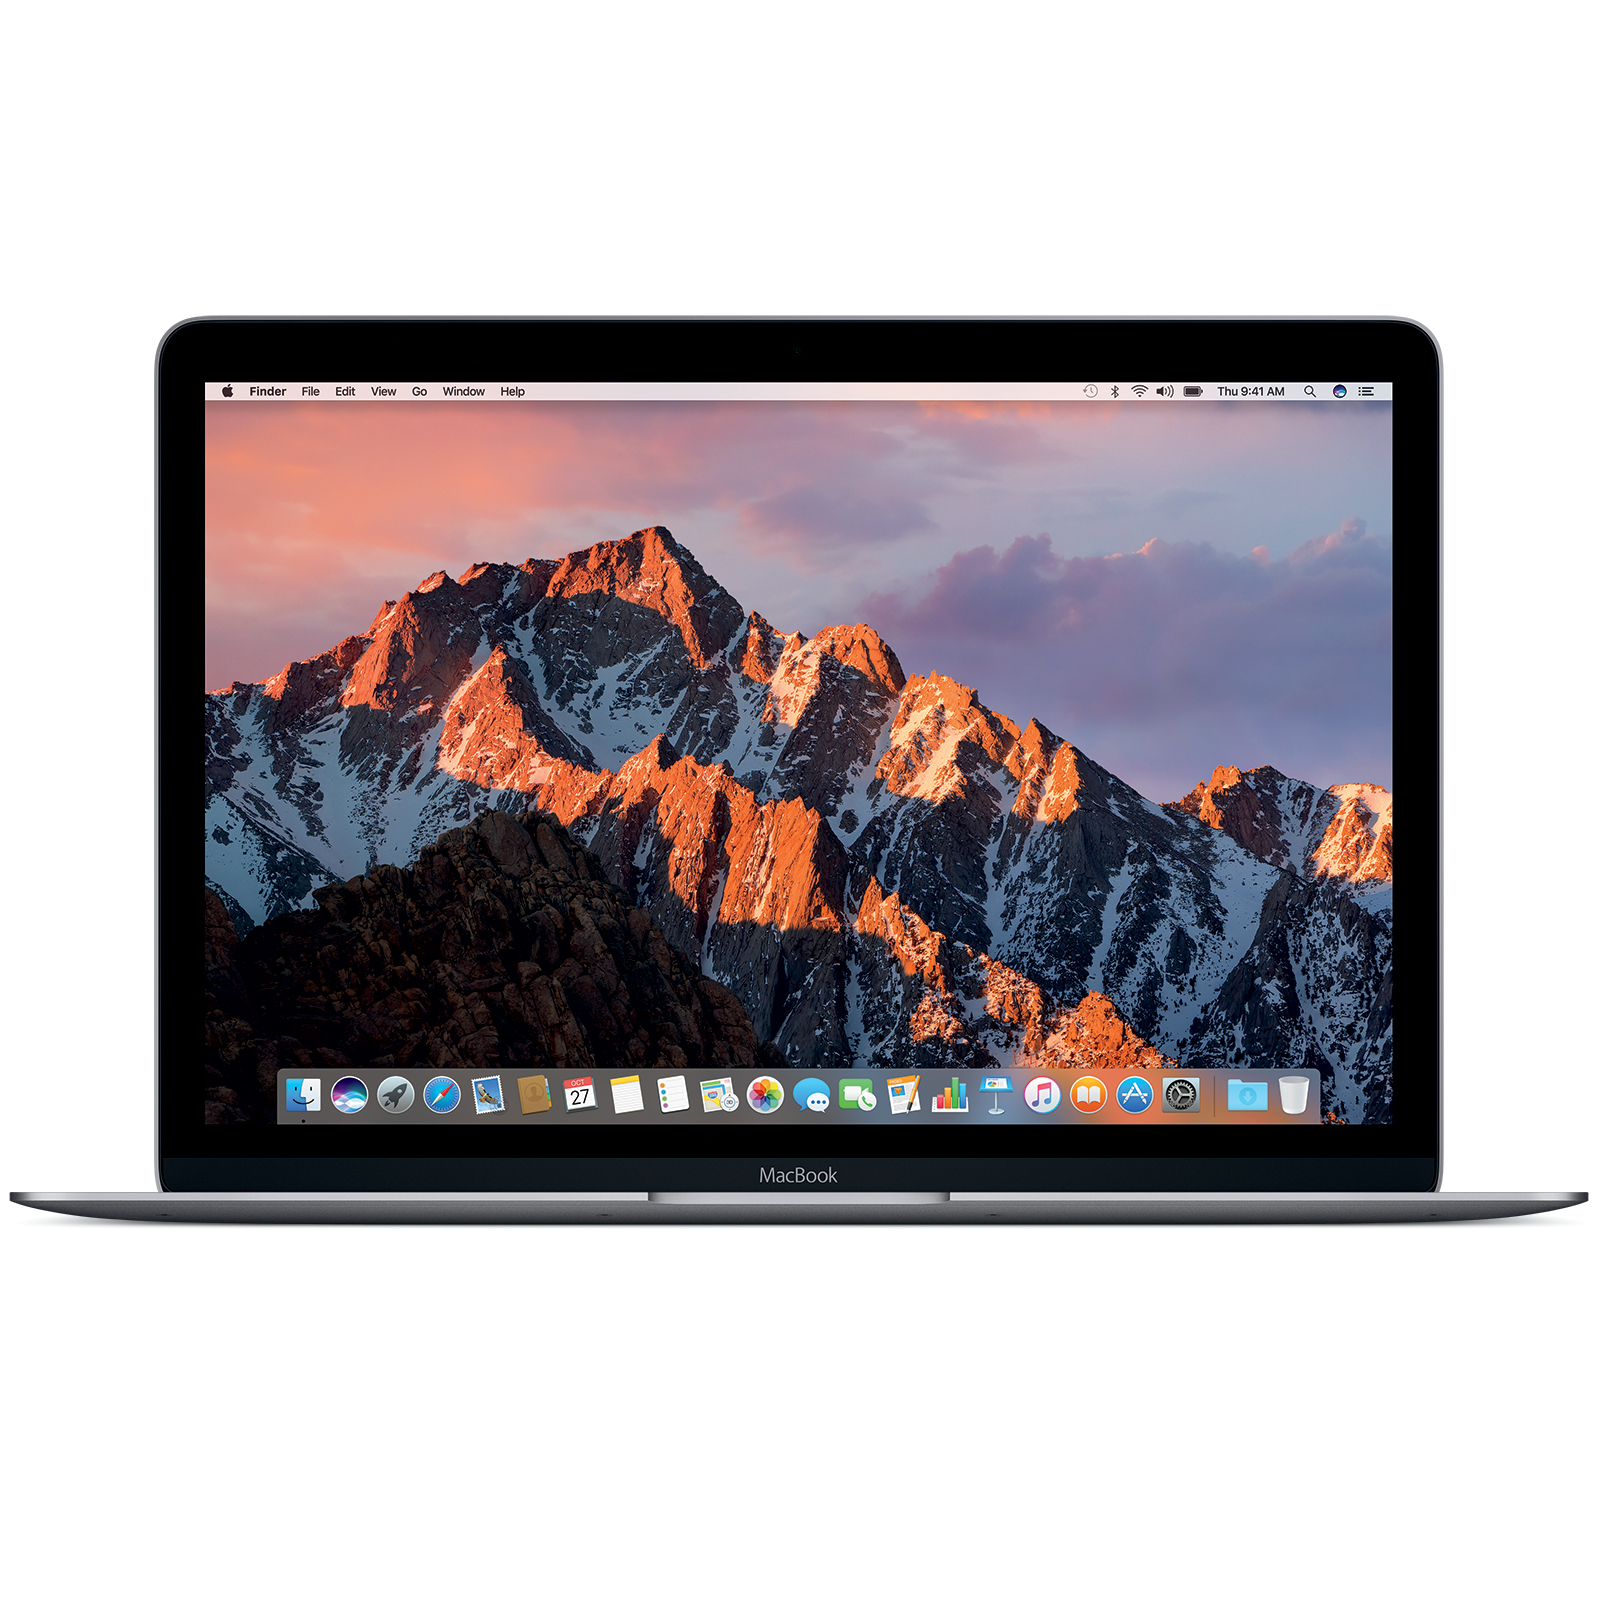 "Macbook Apple MacBook 12"" Gris sidéral (MNYF2FN/A) Intel Core m3 (1.2 GHz) 8 Go SSD 256 Go 12"" LED Wi-Fi AC/Bluetooth Webcam Mac OS X Sierra"